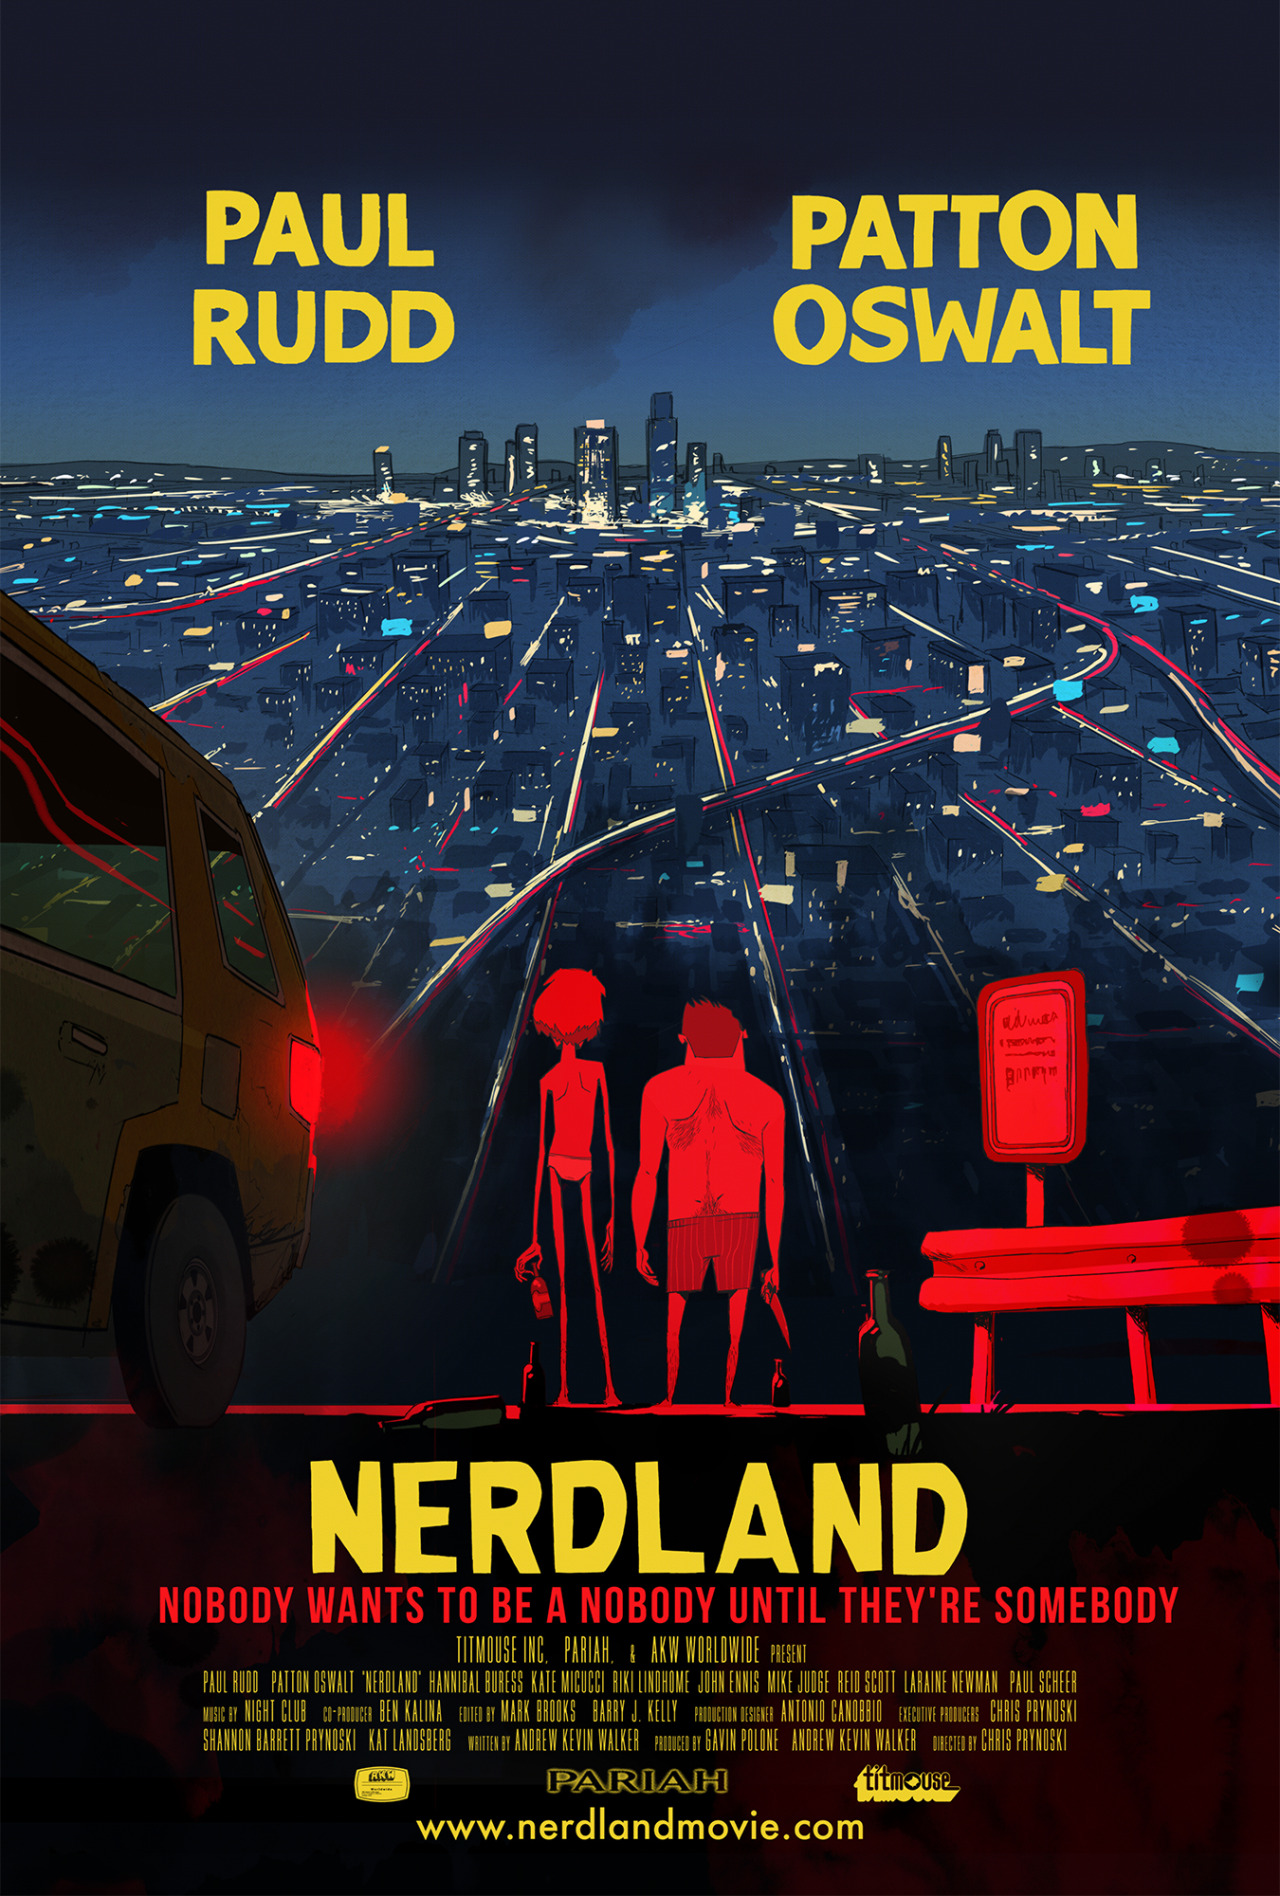 Nerdland starring Paul Rudd and Patton Oswalt